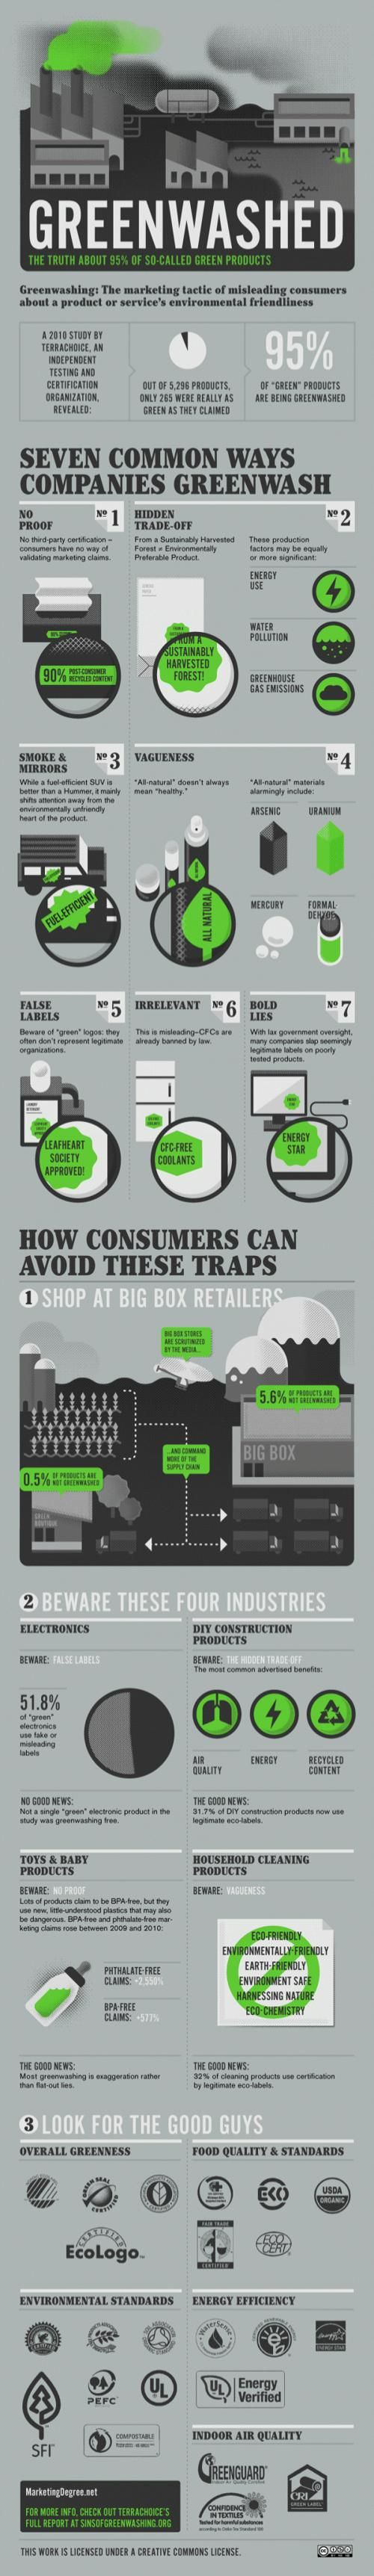 Cassandra cappello graphic design toronto - The Truth About Product Greenwashing Infographic Sustainable Plant